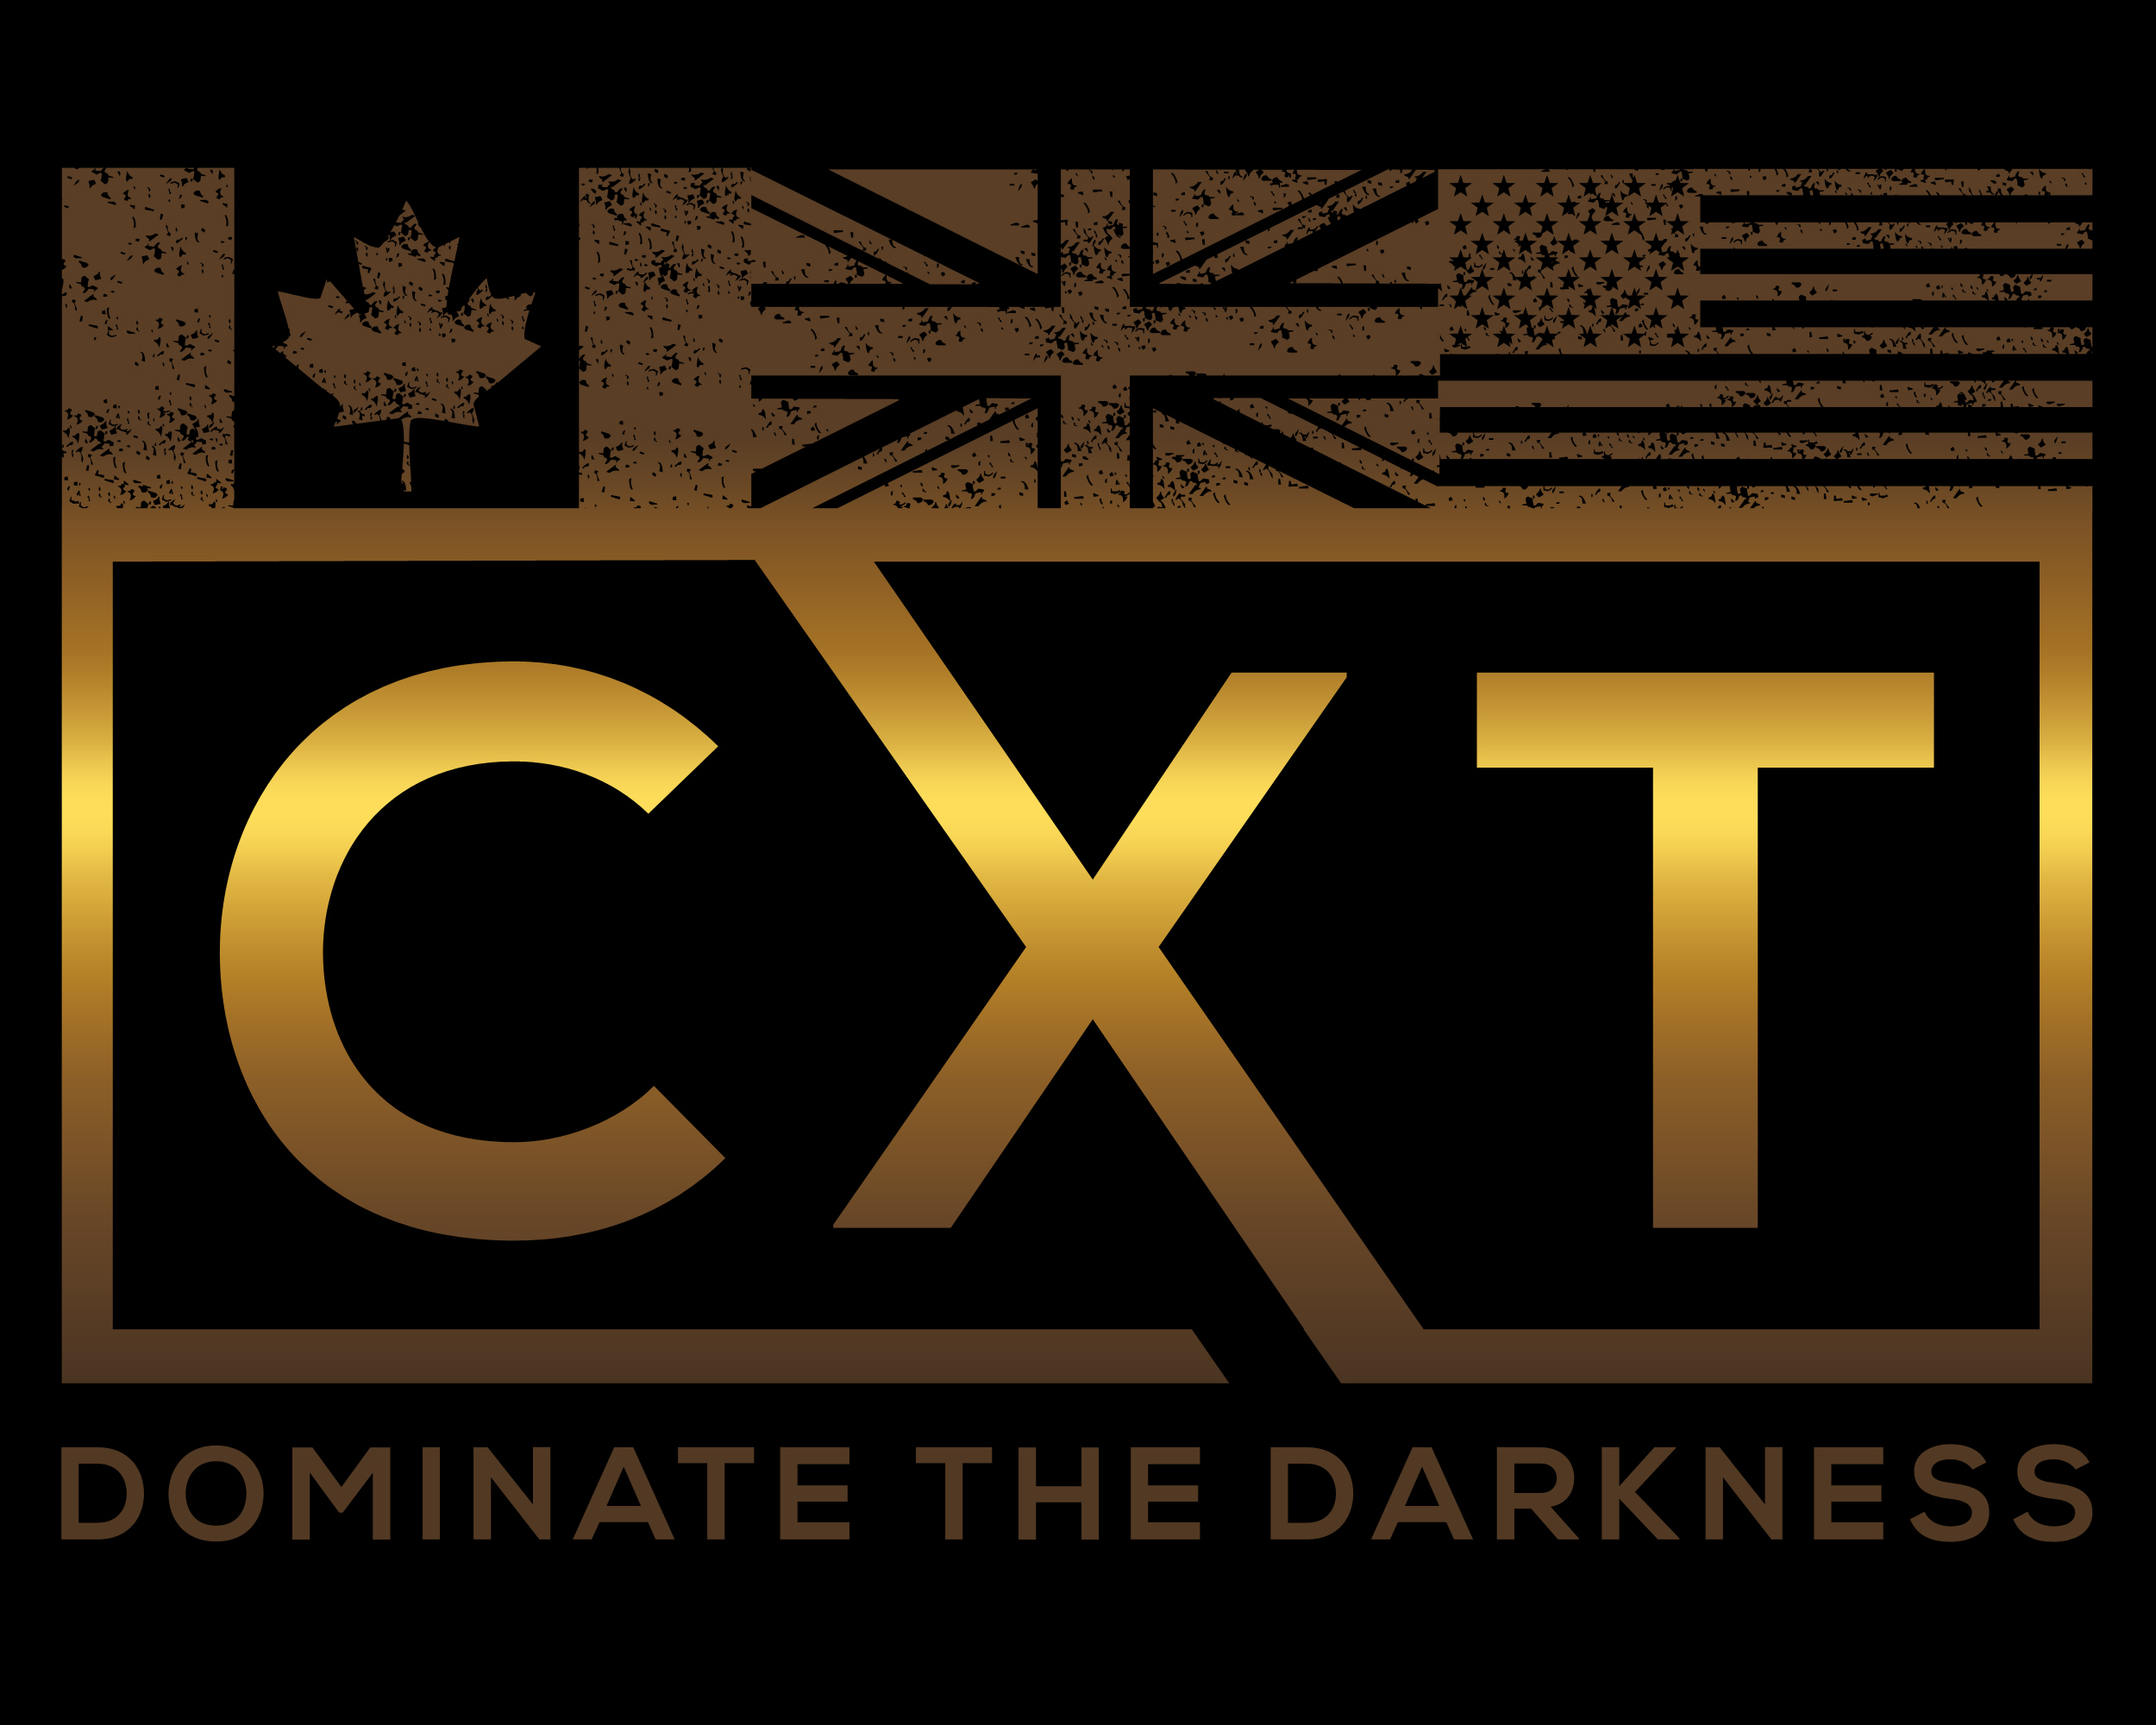 We remember them and their dedication to the spirit of honour, freedom and defiance to the darkness… - If you are a contributing member of the CXT Network and you have a relative who served in Law Enforcement or Military… we are proud to honour them here as honourary CXT members.